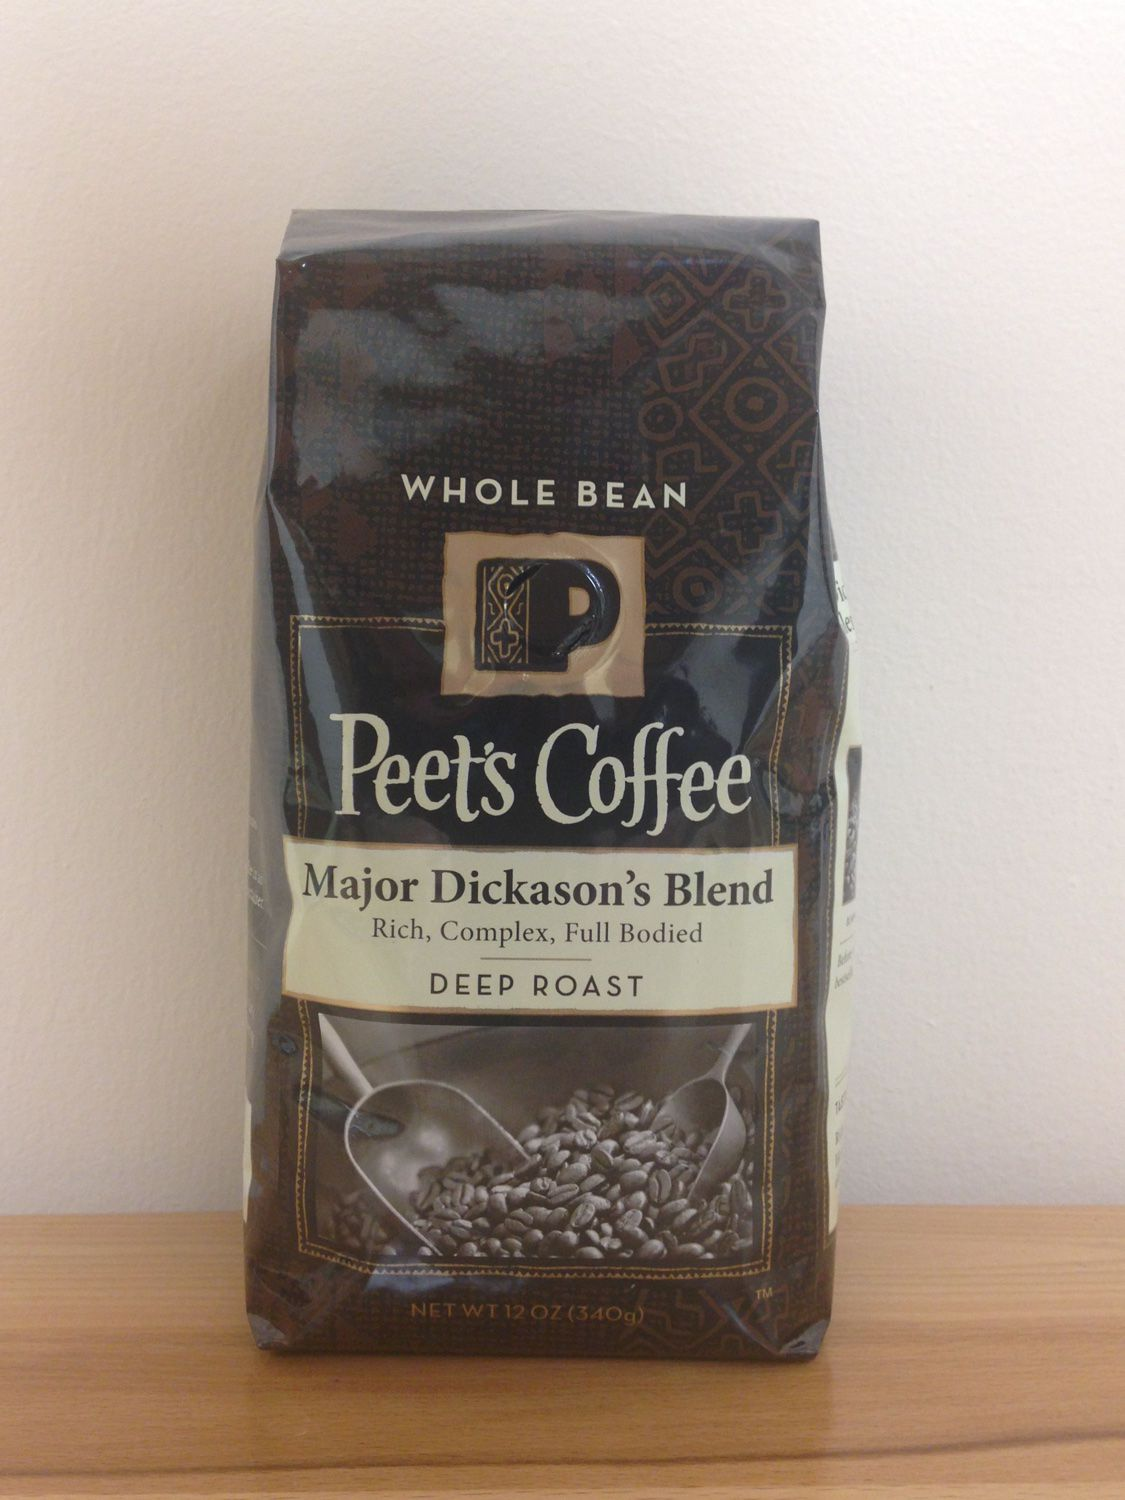 Major Dickason's Blend from Peet's Coffee